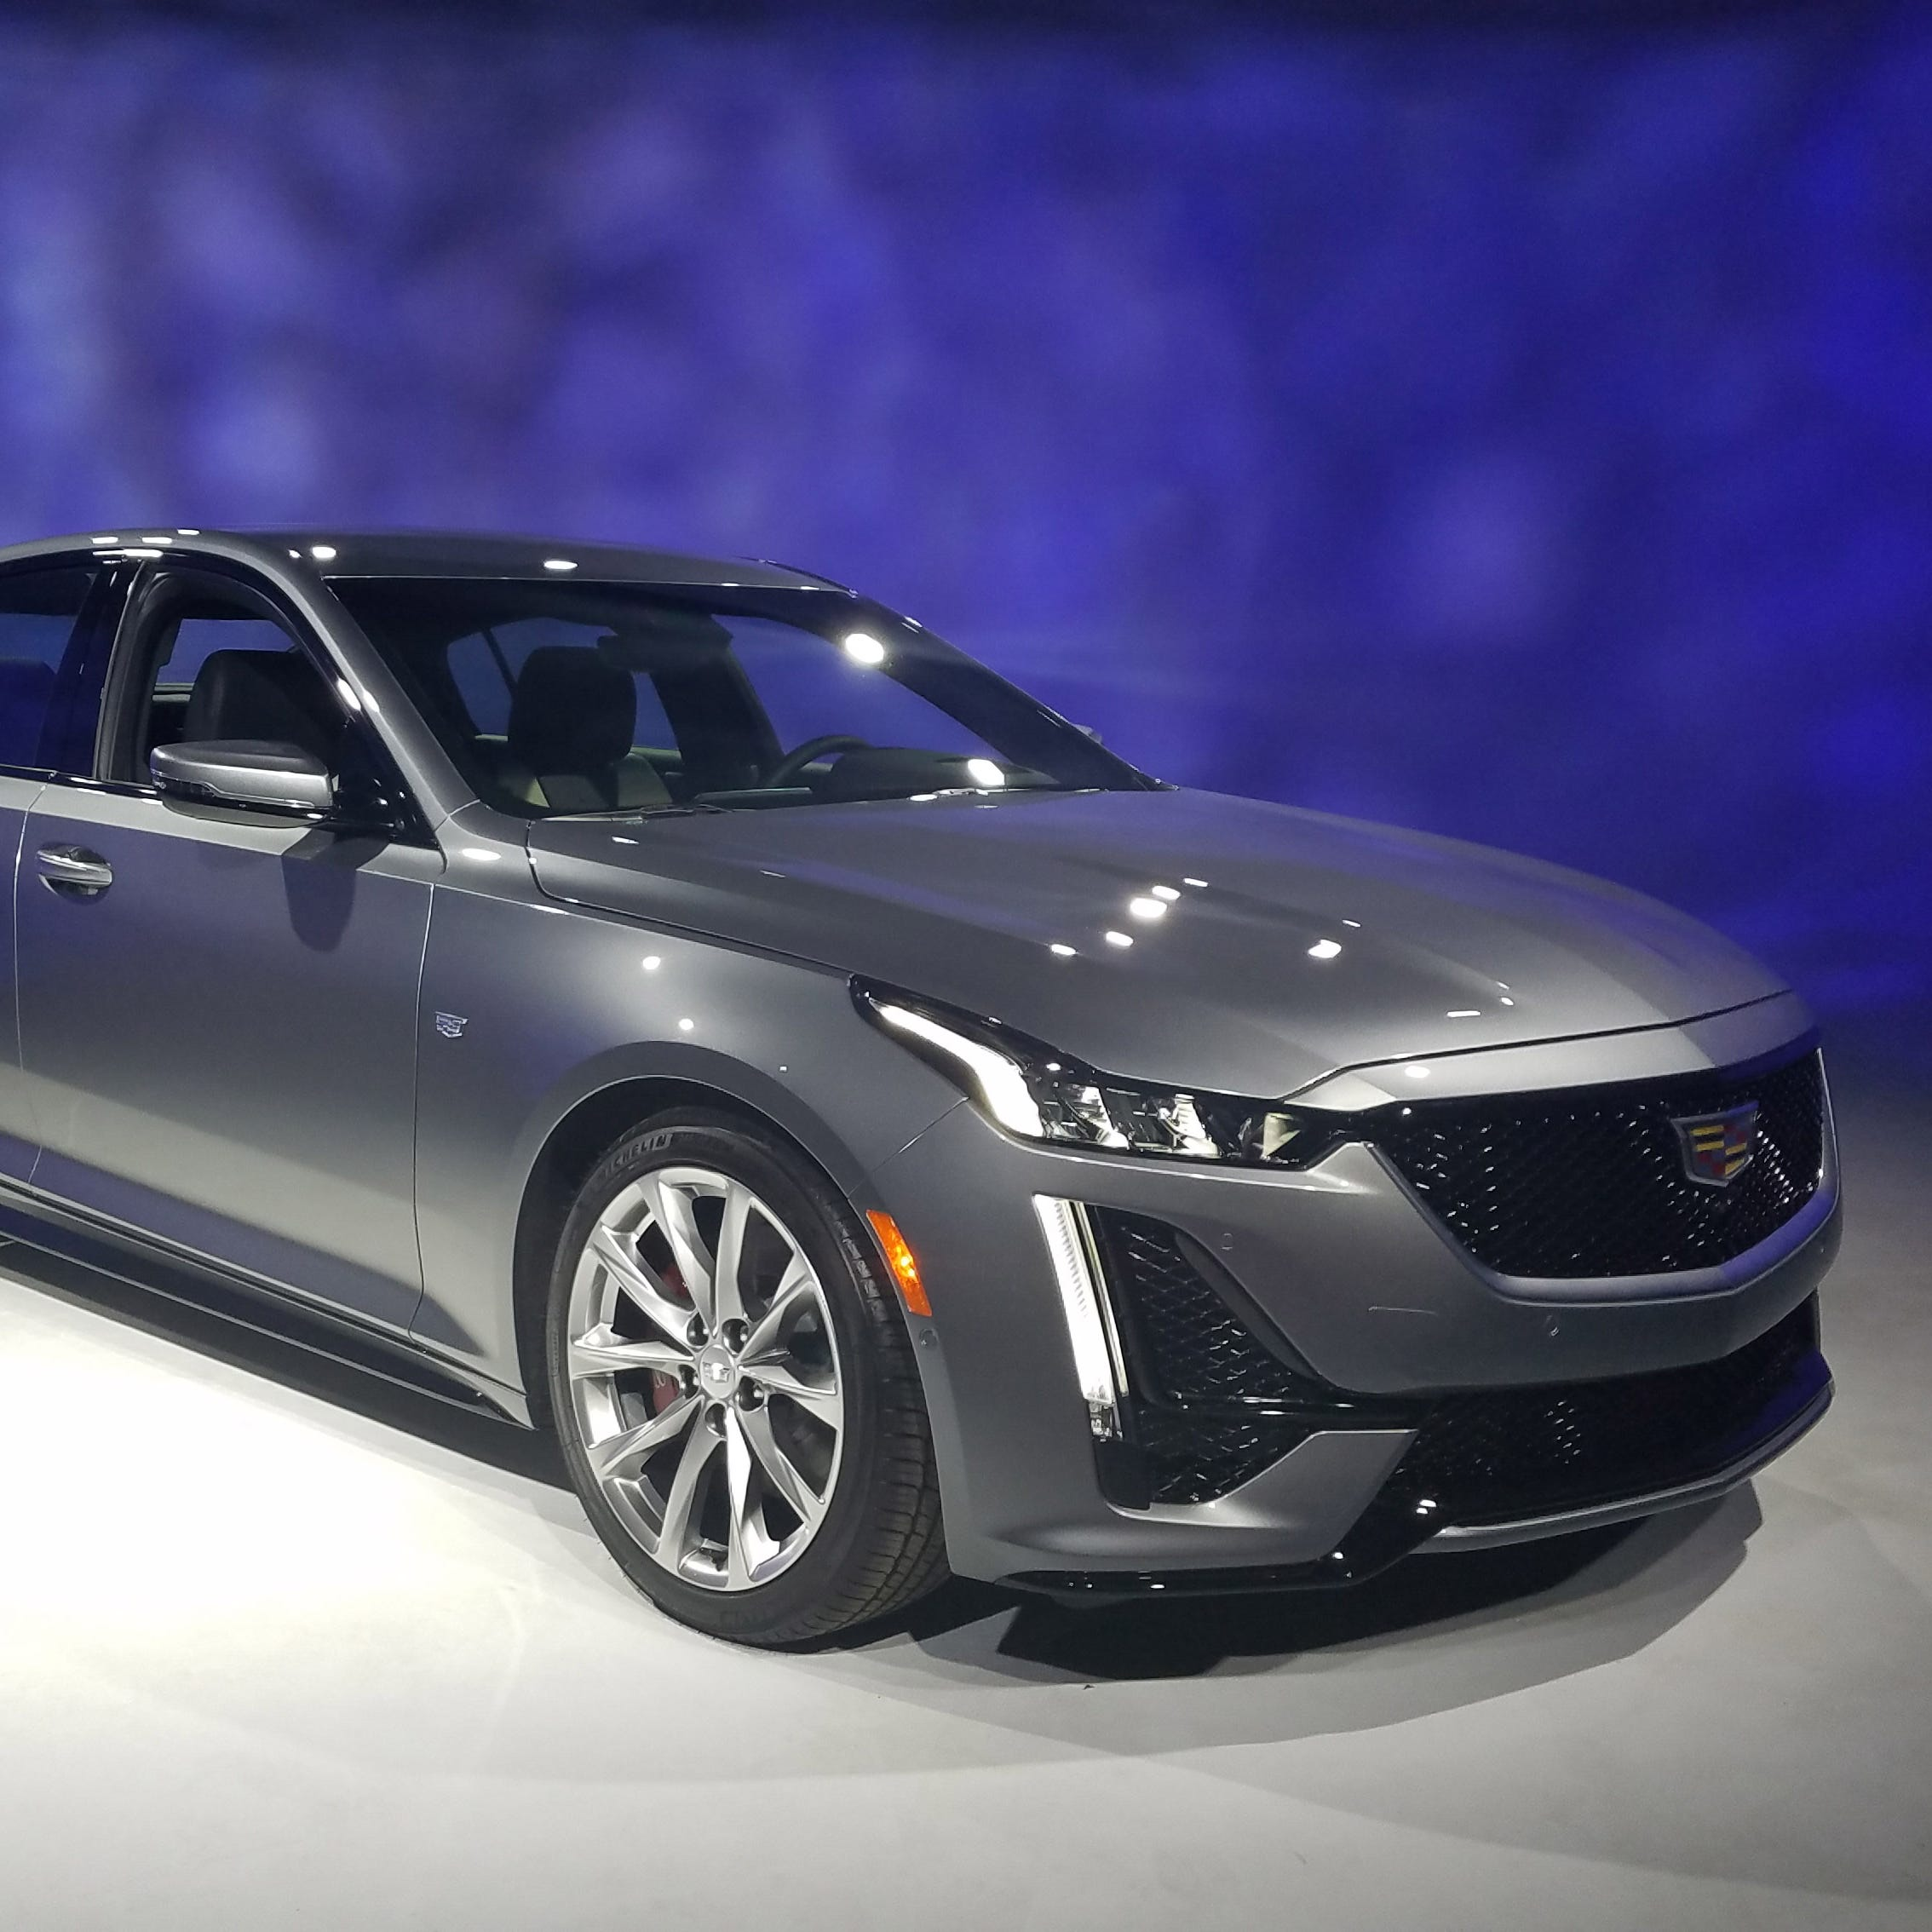 NYC show: Goodbye mid-size Cadillac CTS, hello compact CT5